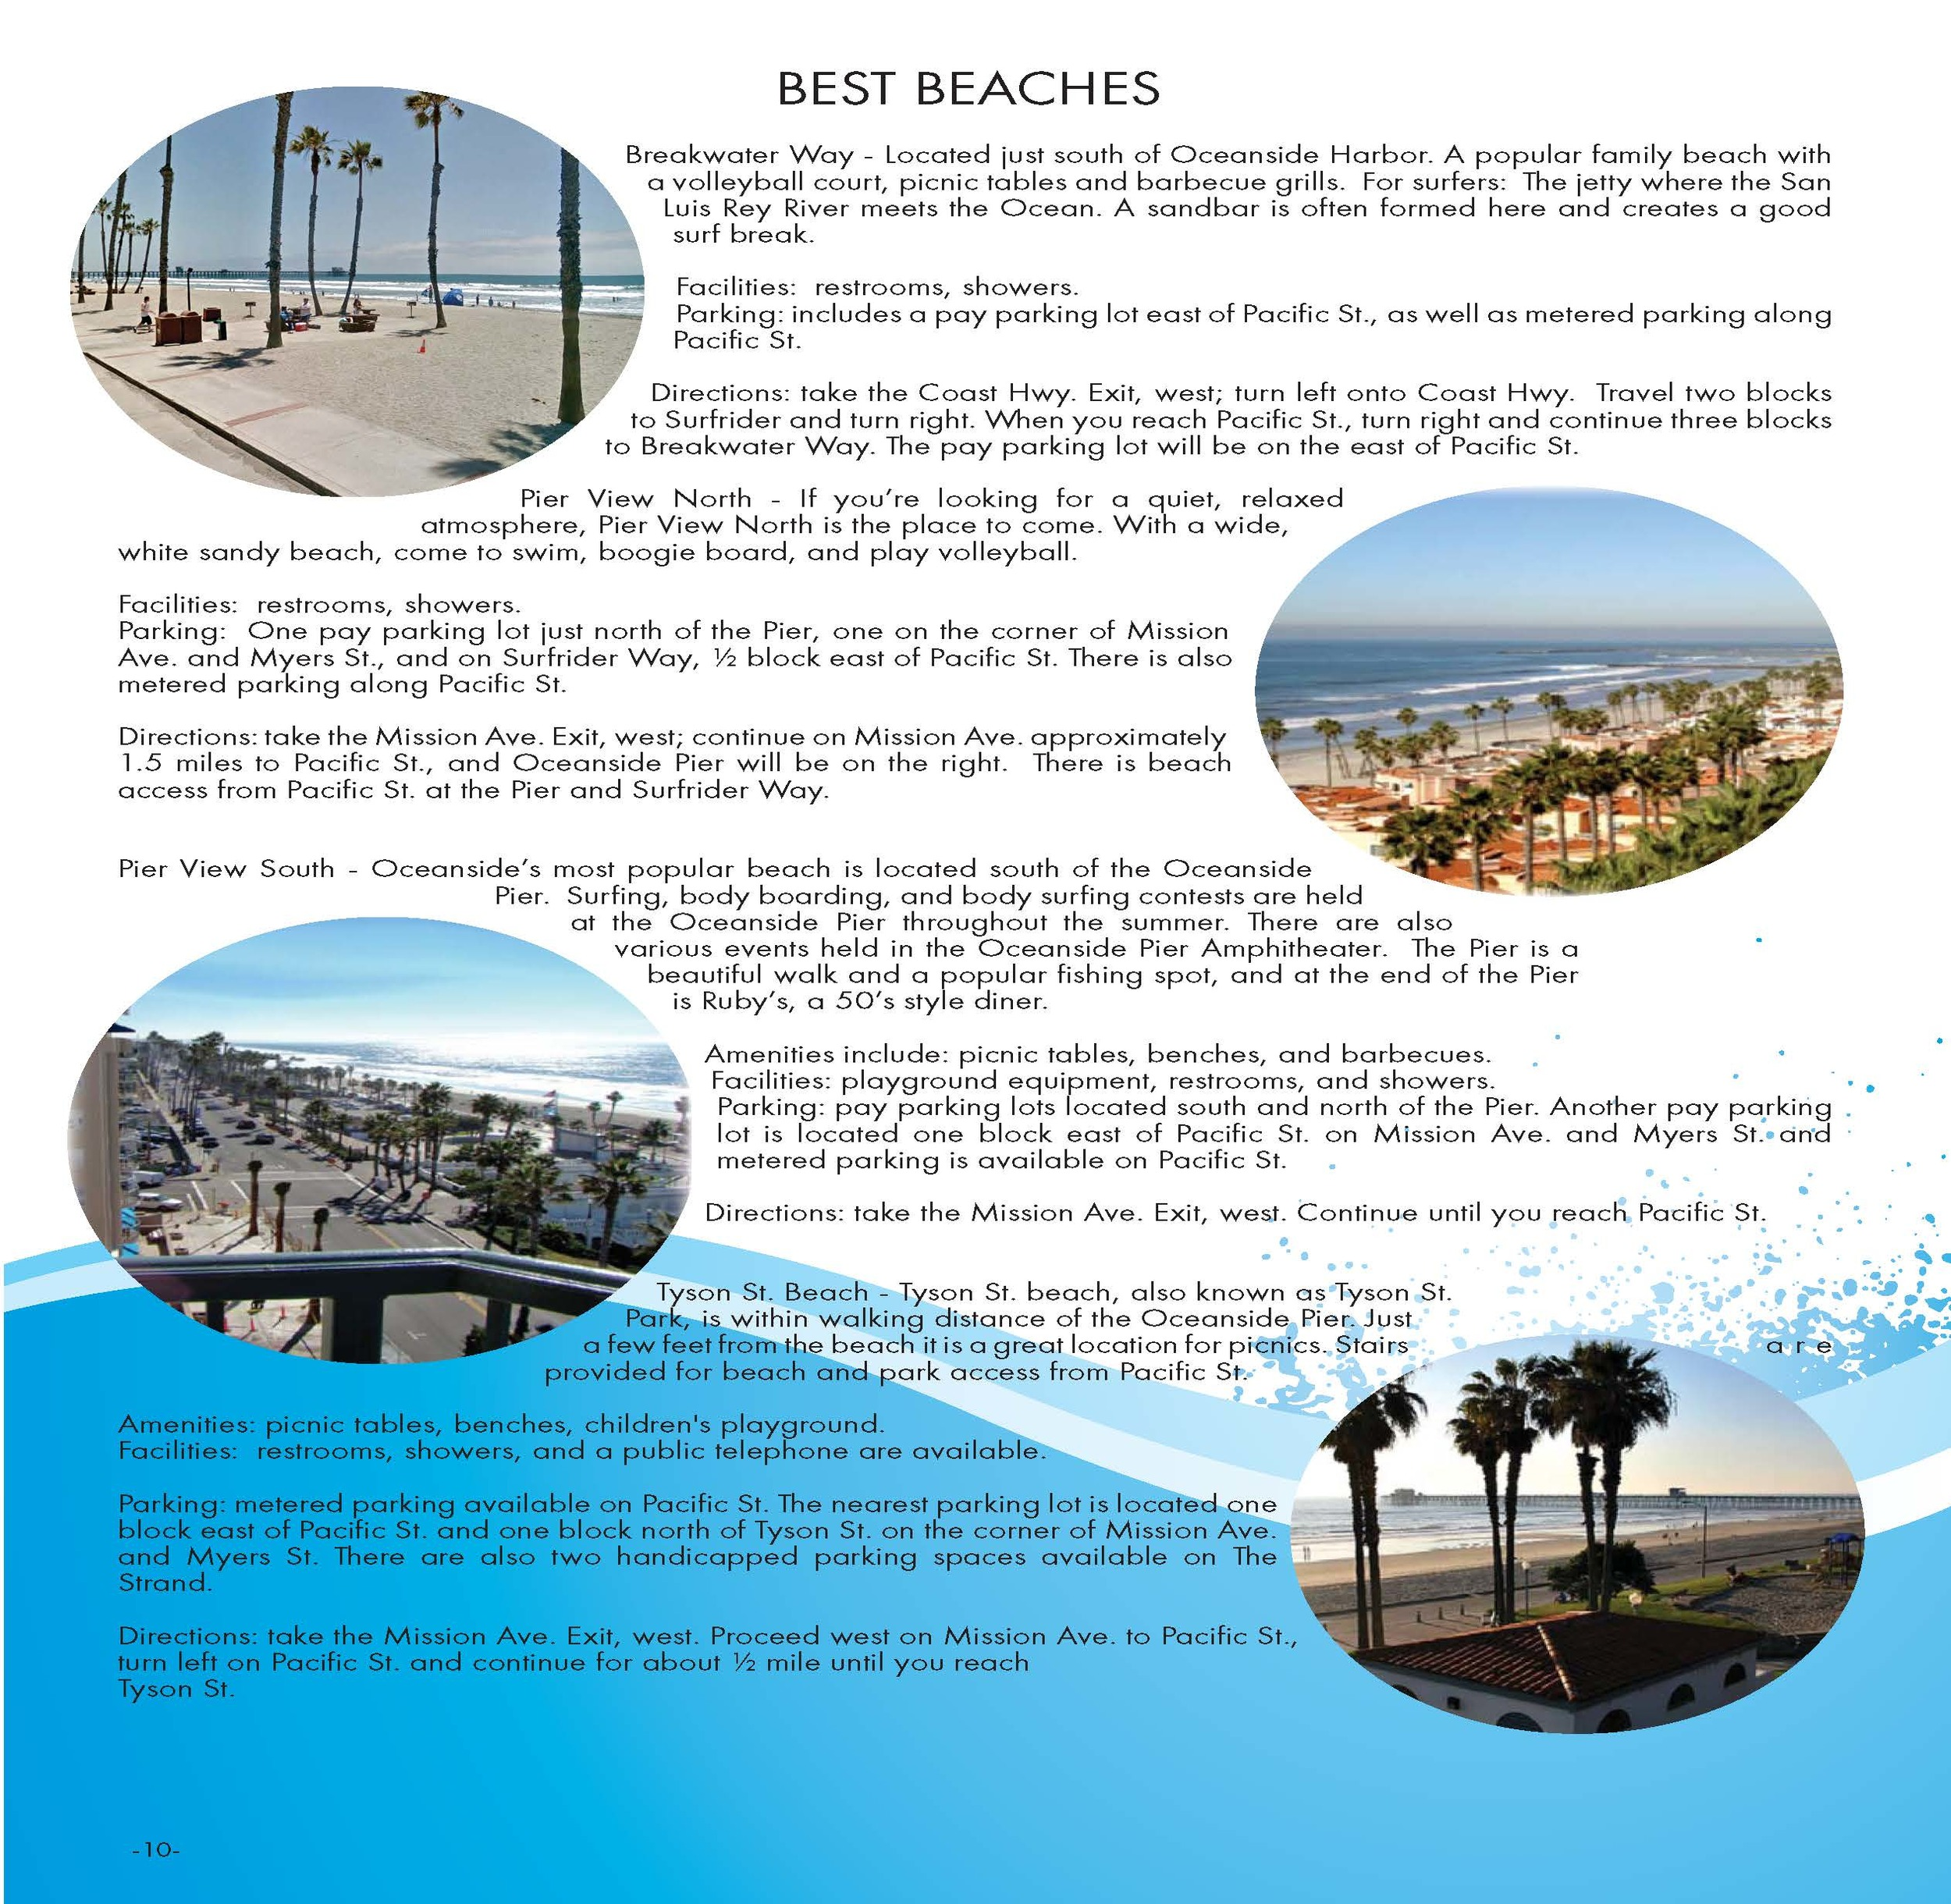 Best Beaches in Oceanside